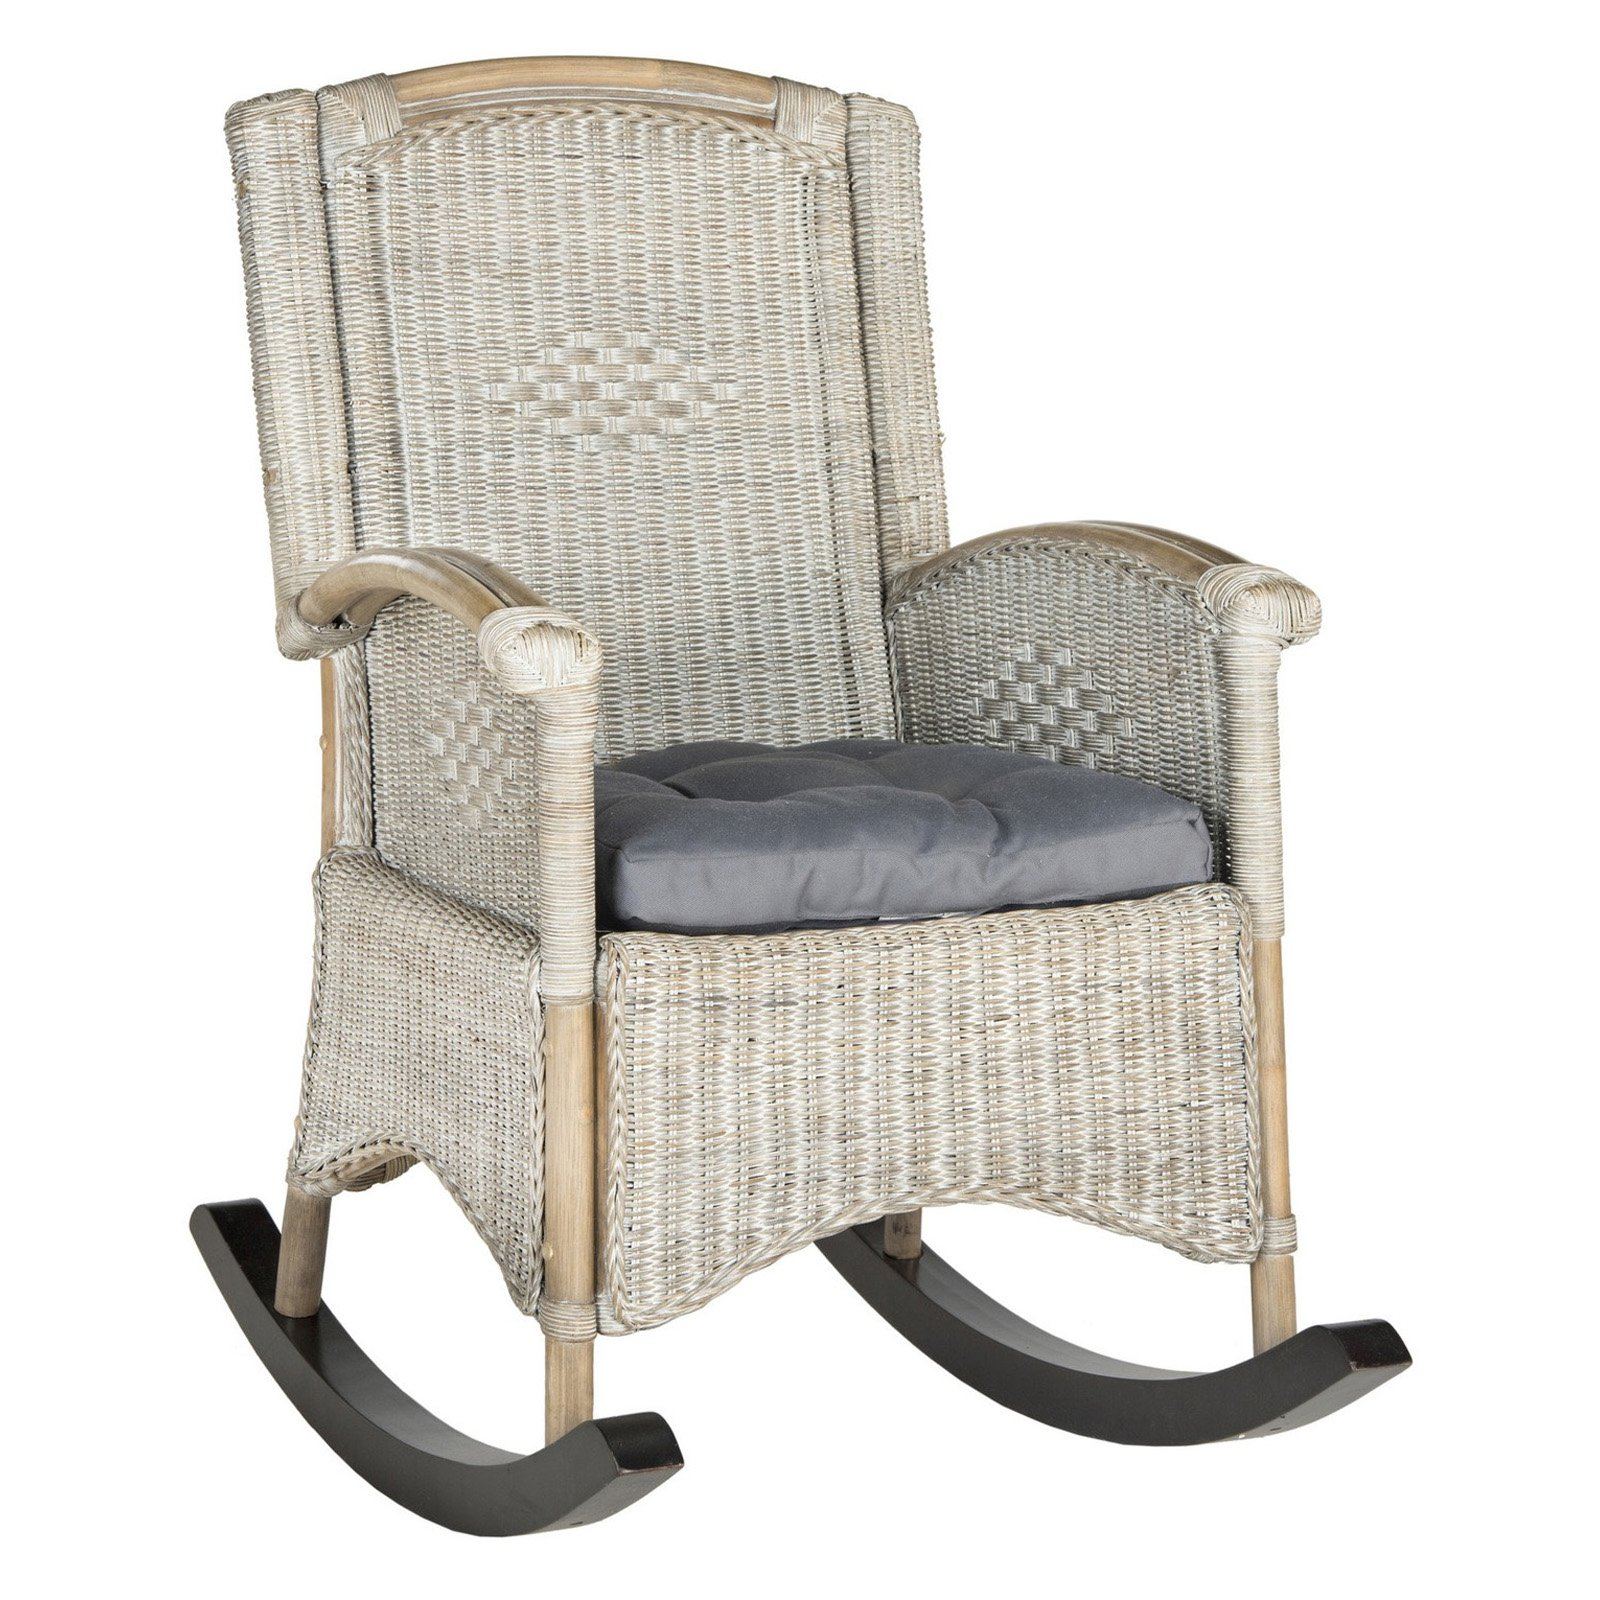 Wicker Rocking Chair Safavieh Verona Rattan Rocking Chair Multiple Colors